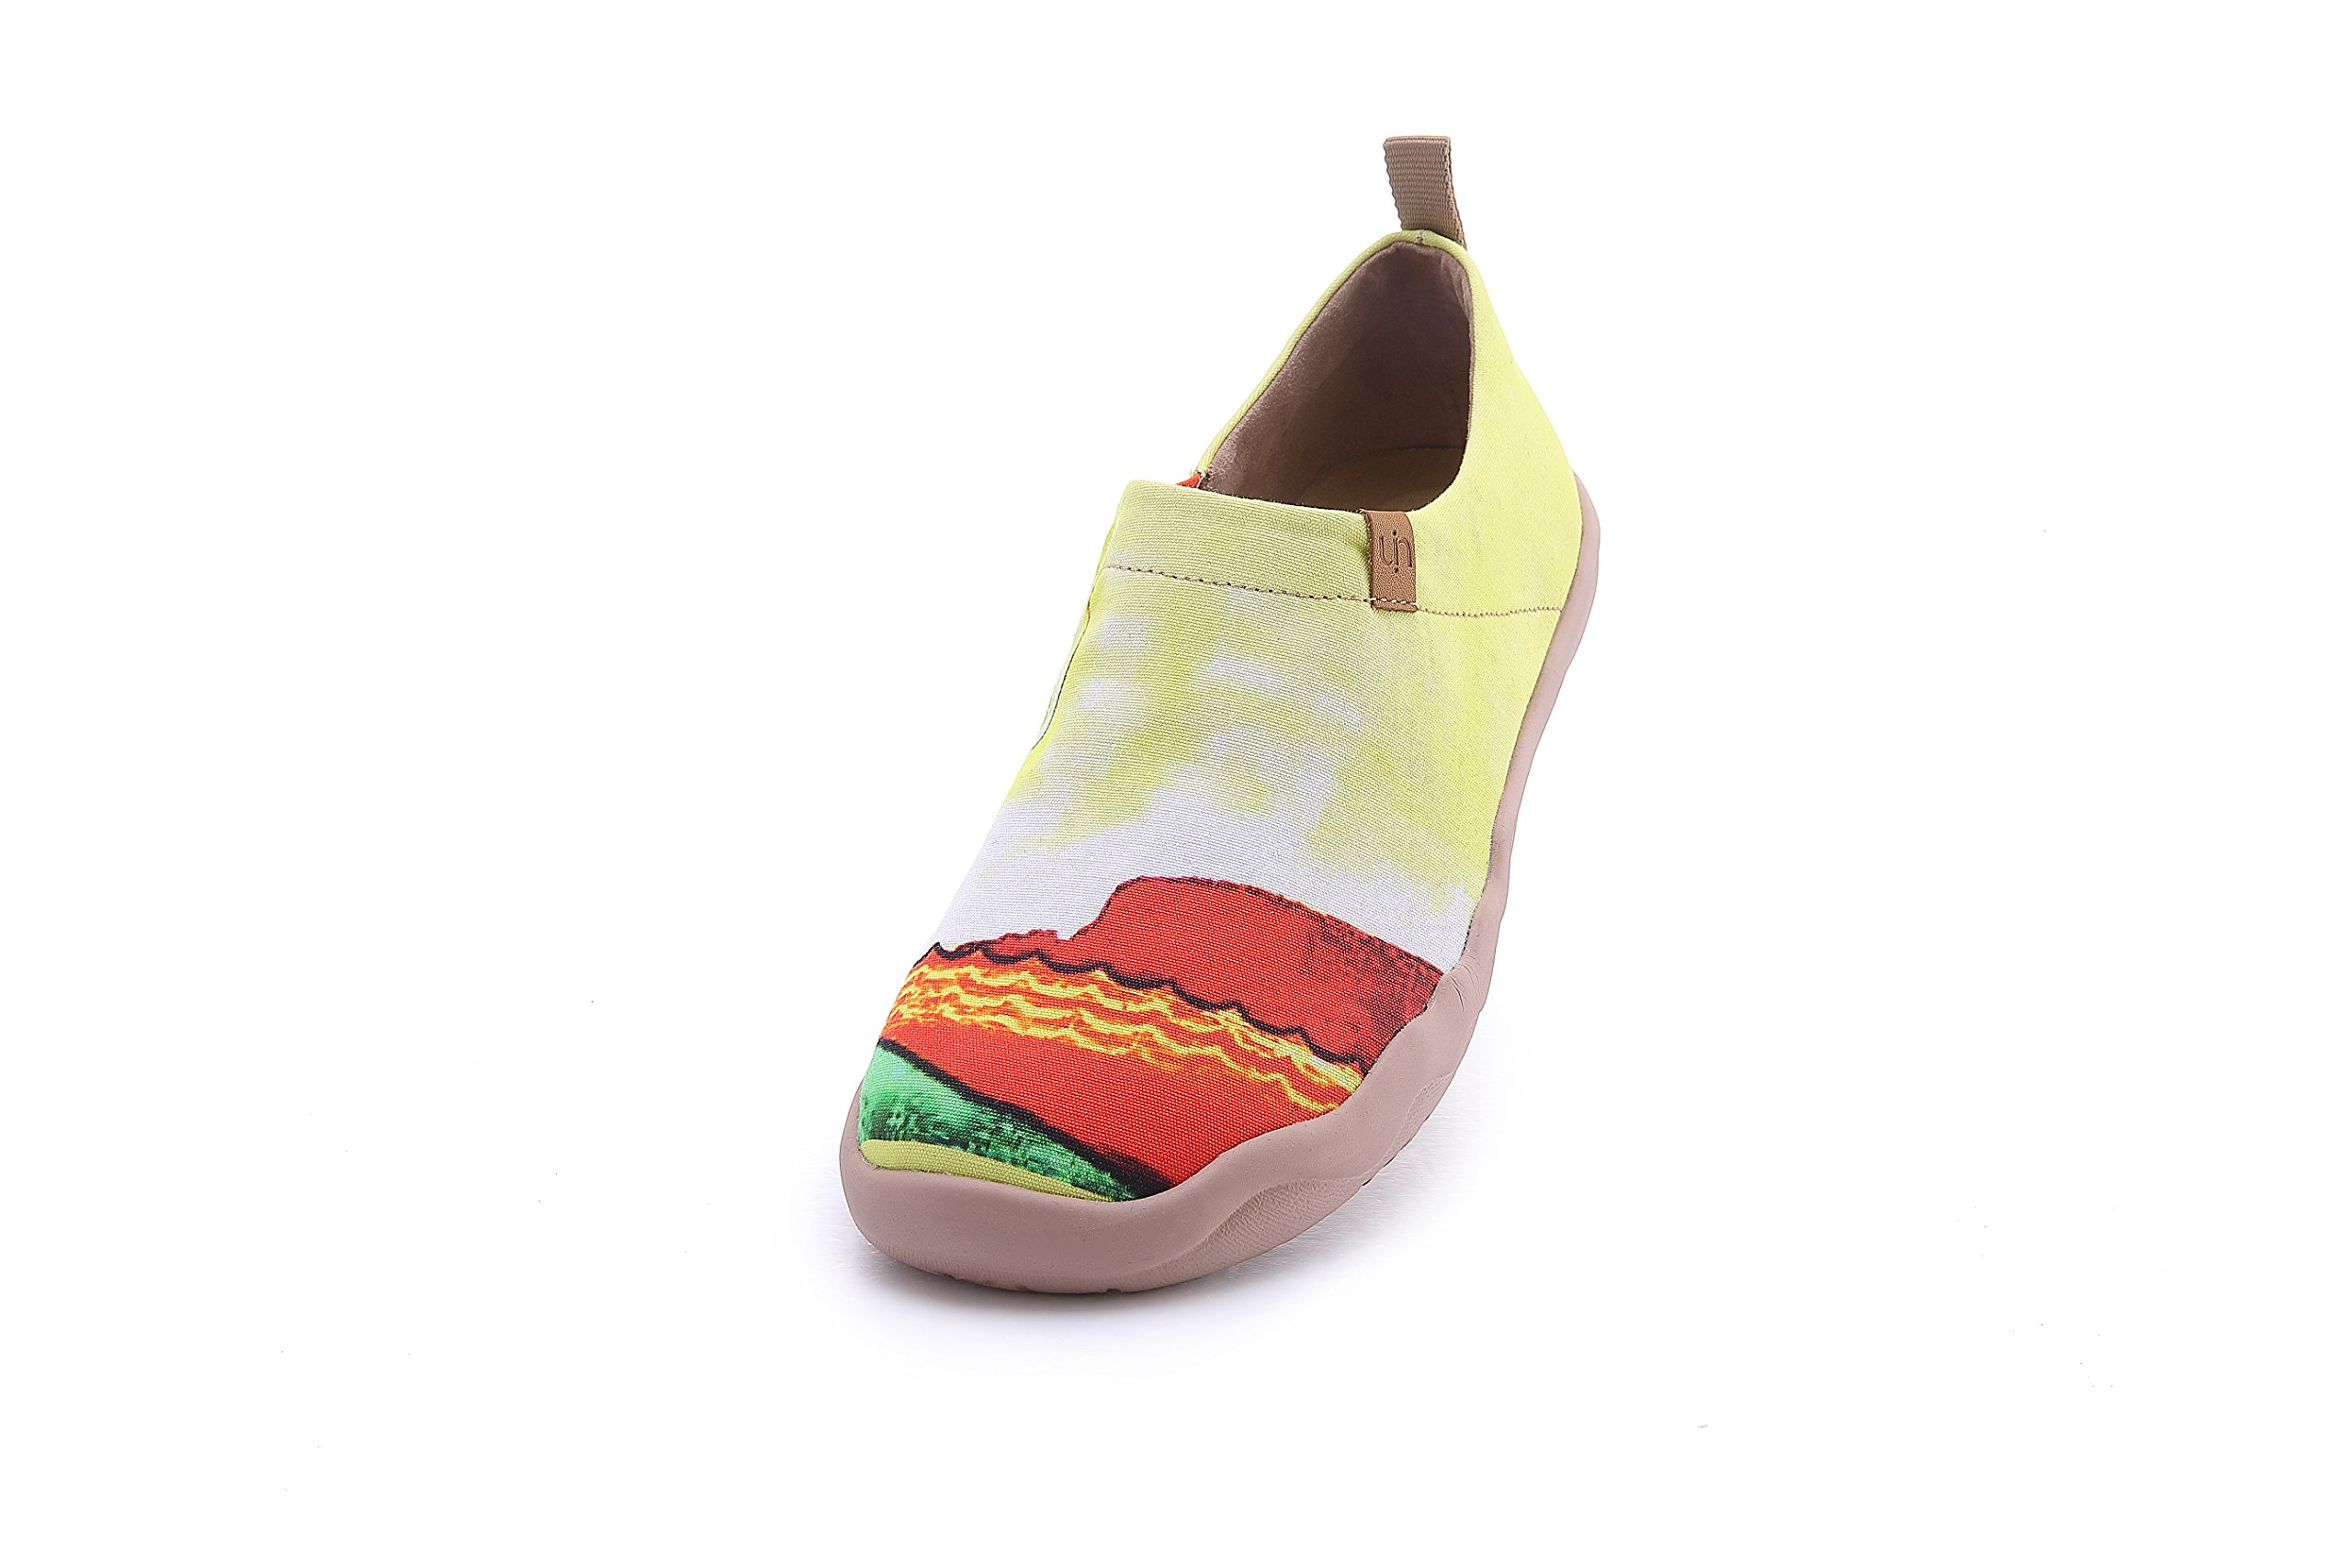 UIN Men's Hawaii Surfing Canvas Colorful Travel Loafer Shoes Yellow (9.5) by UIN (Image #3)